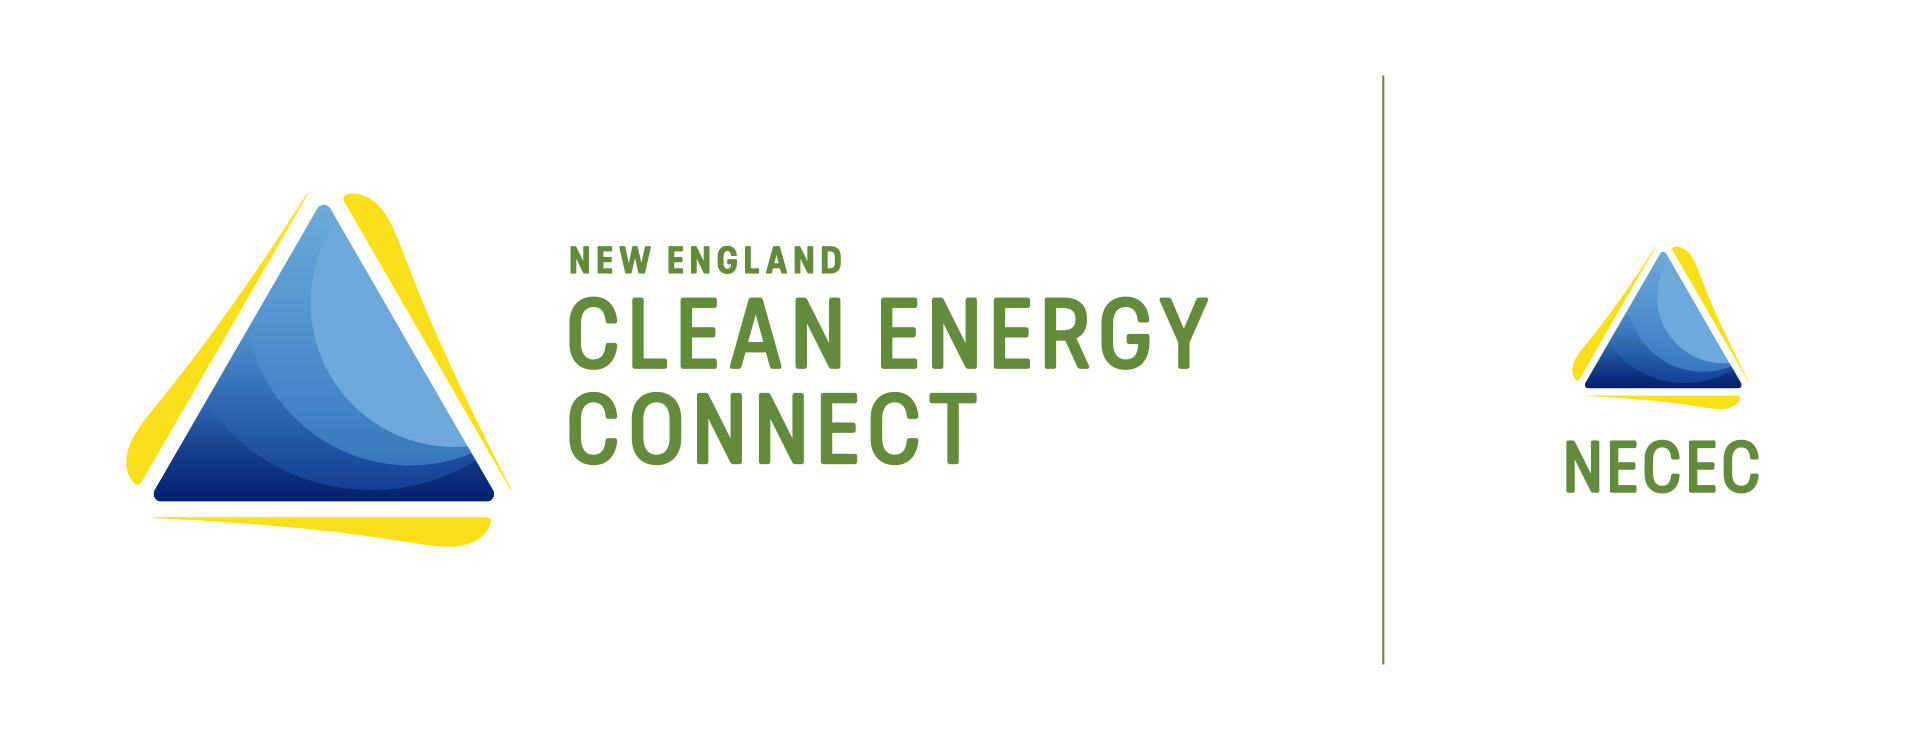 new_england_clean_energy_connect_01_logo.png